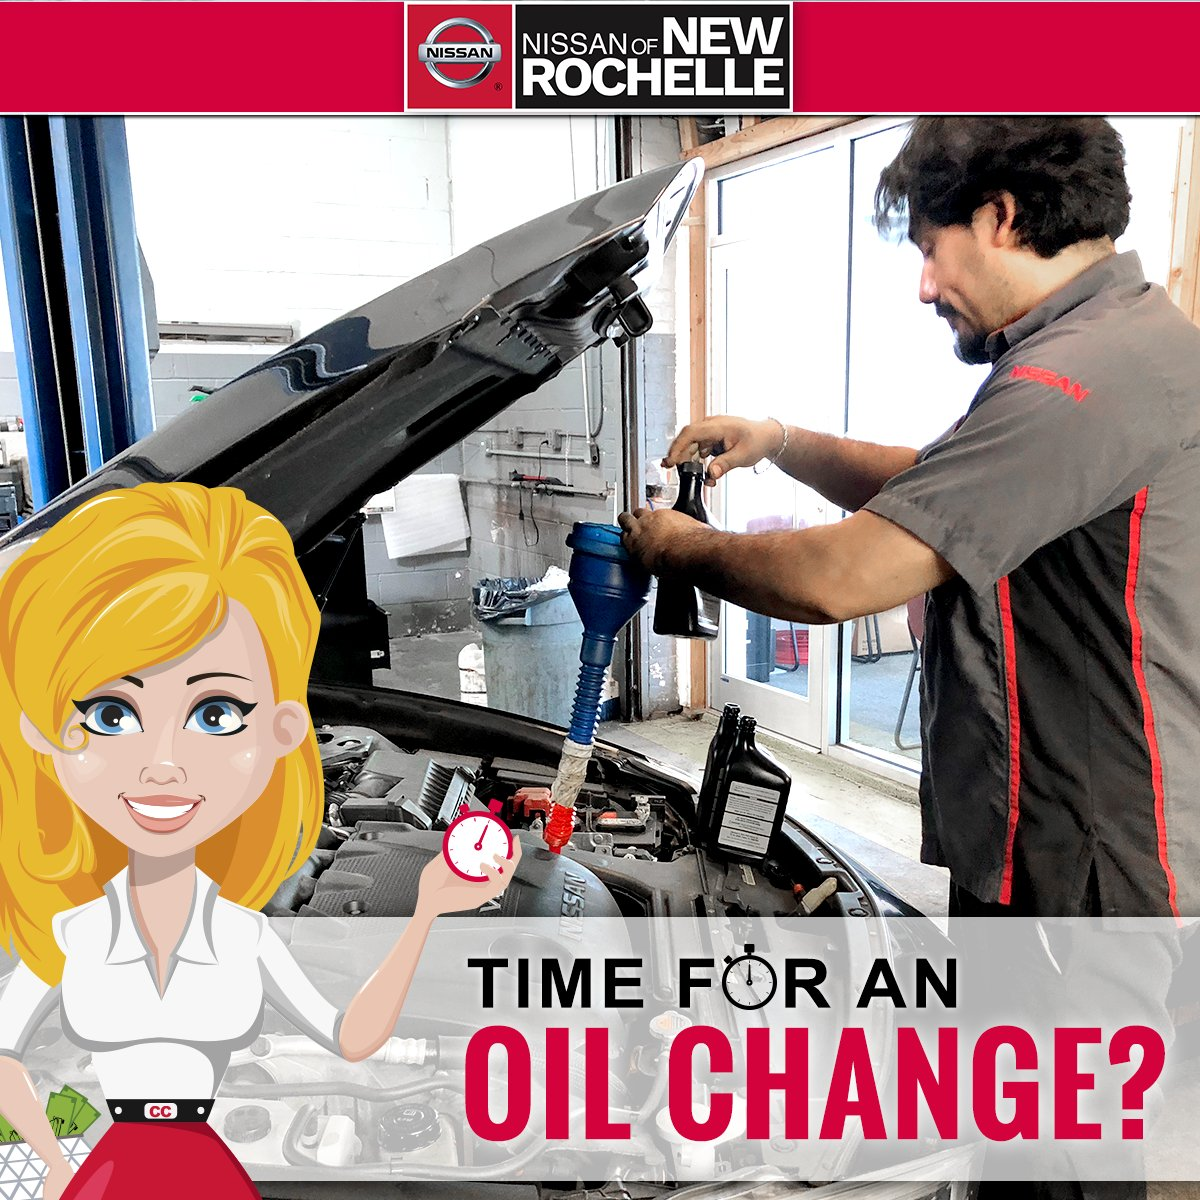 Call On The Professionals At Nissan Of New Rochelle To Help You Take Care  Of Your Vehicle! Schedule Your Service Appointment Today!